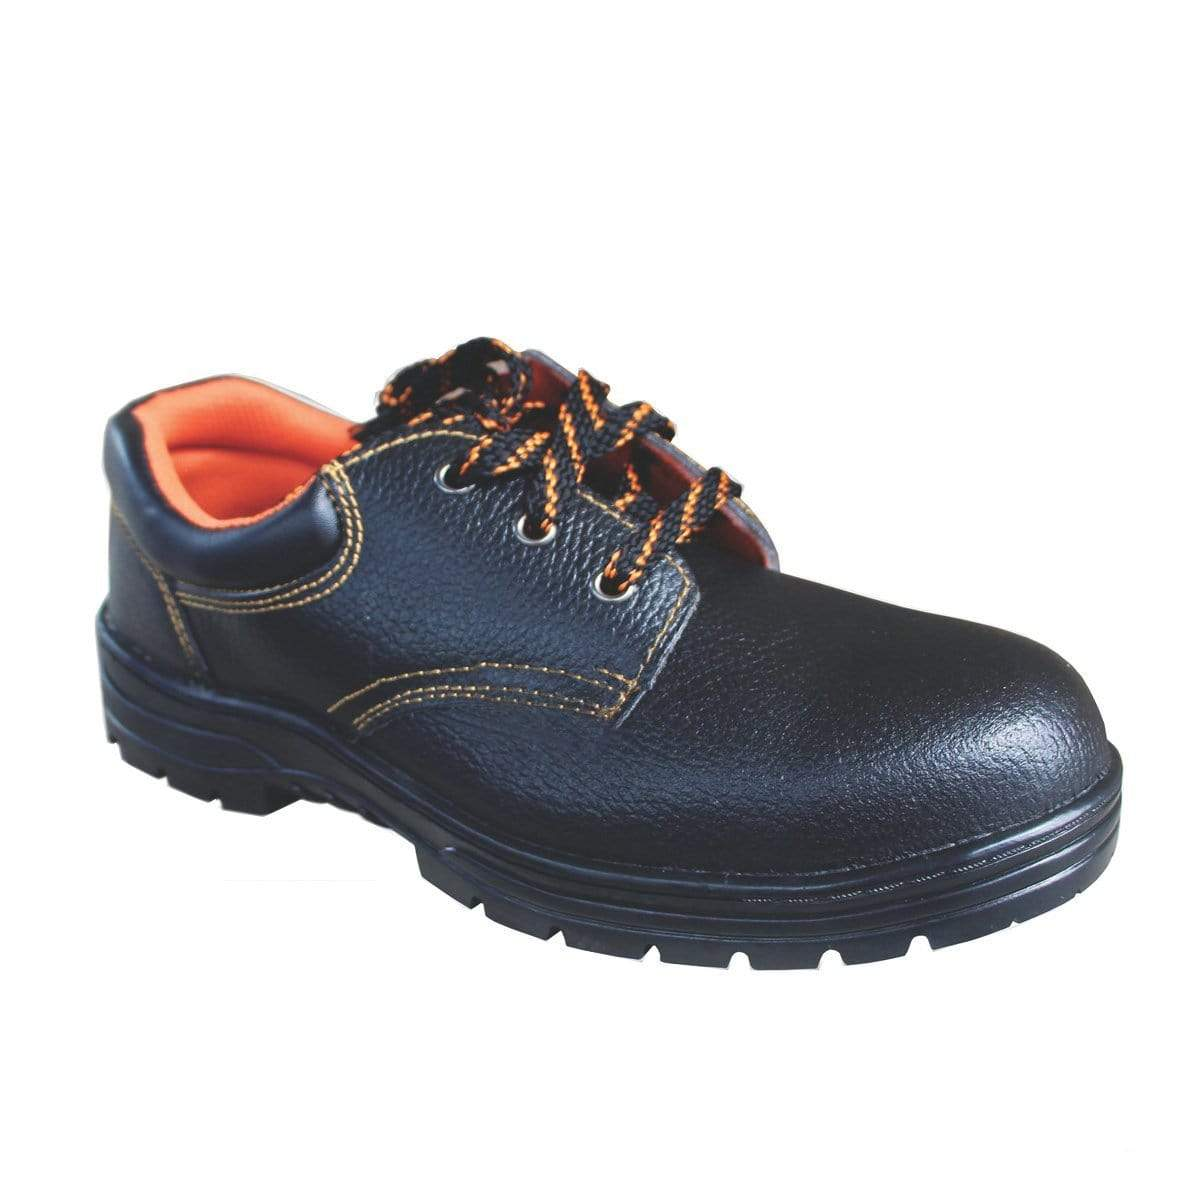 ANEKA Worker Safety Shoes Safety Boots Steel Toe Cap Kasut UK11 1000#